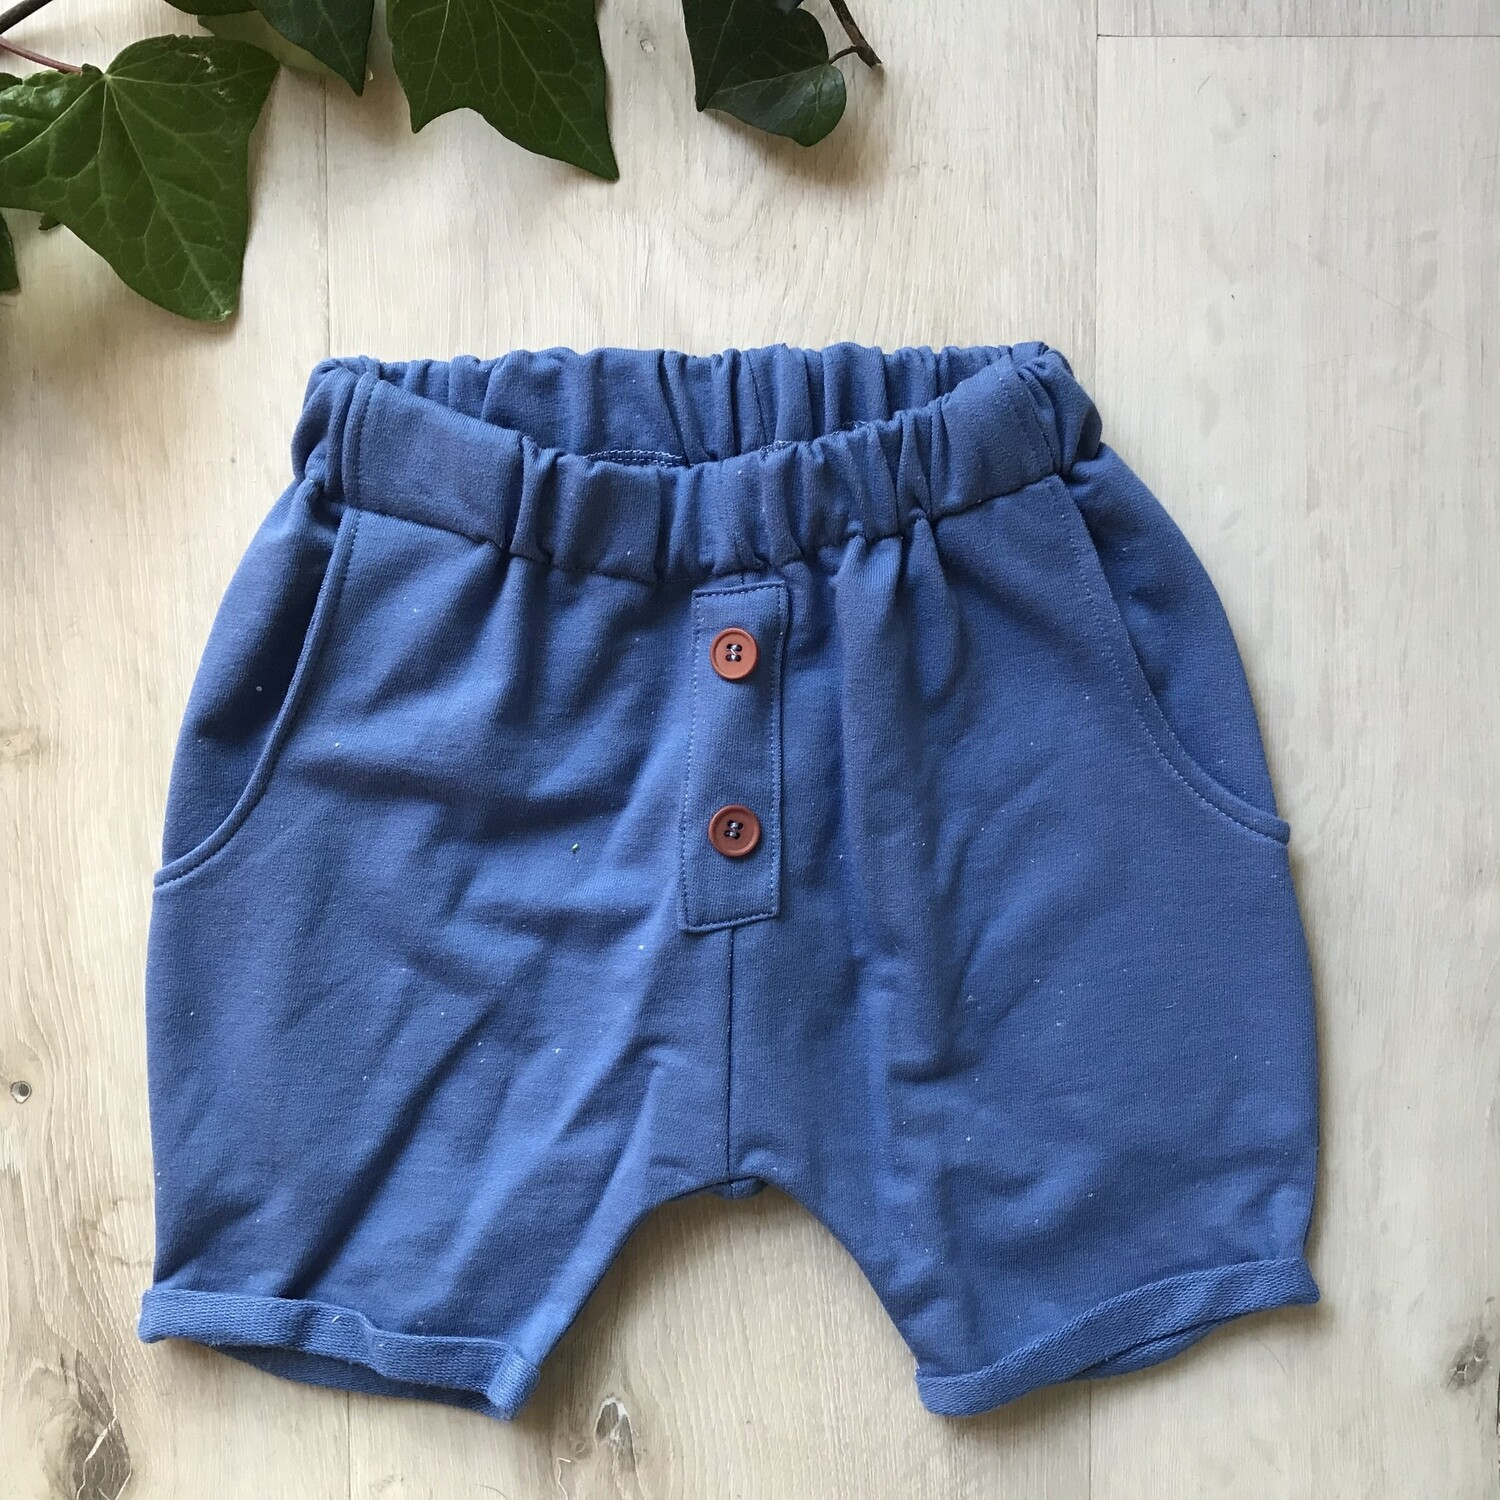 Royal blue lounge shorts